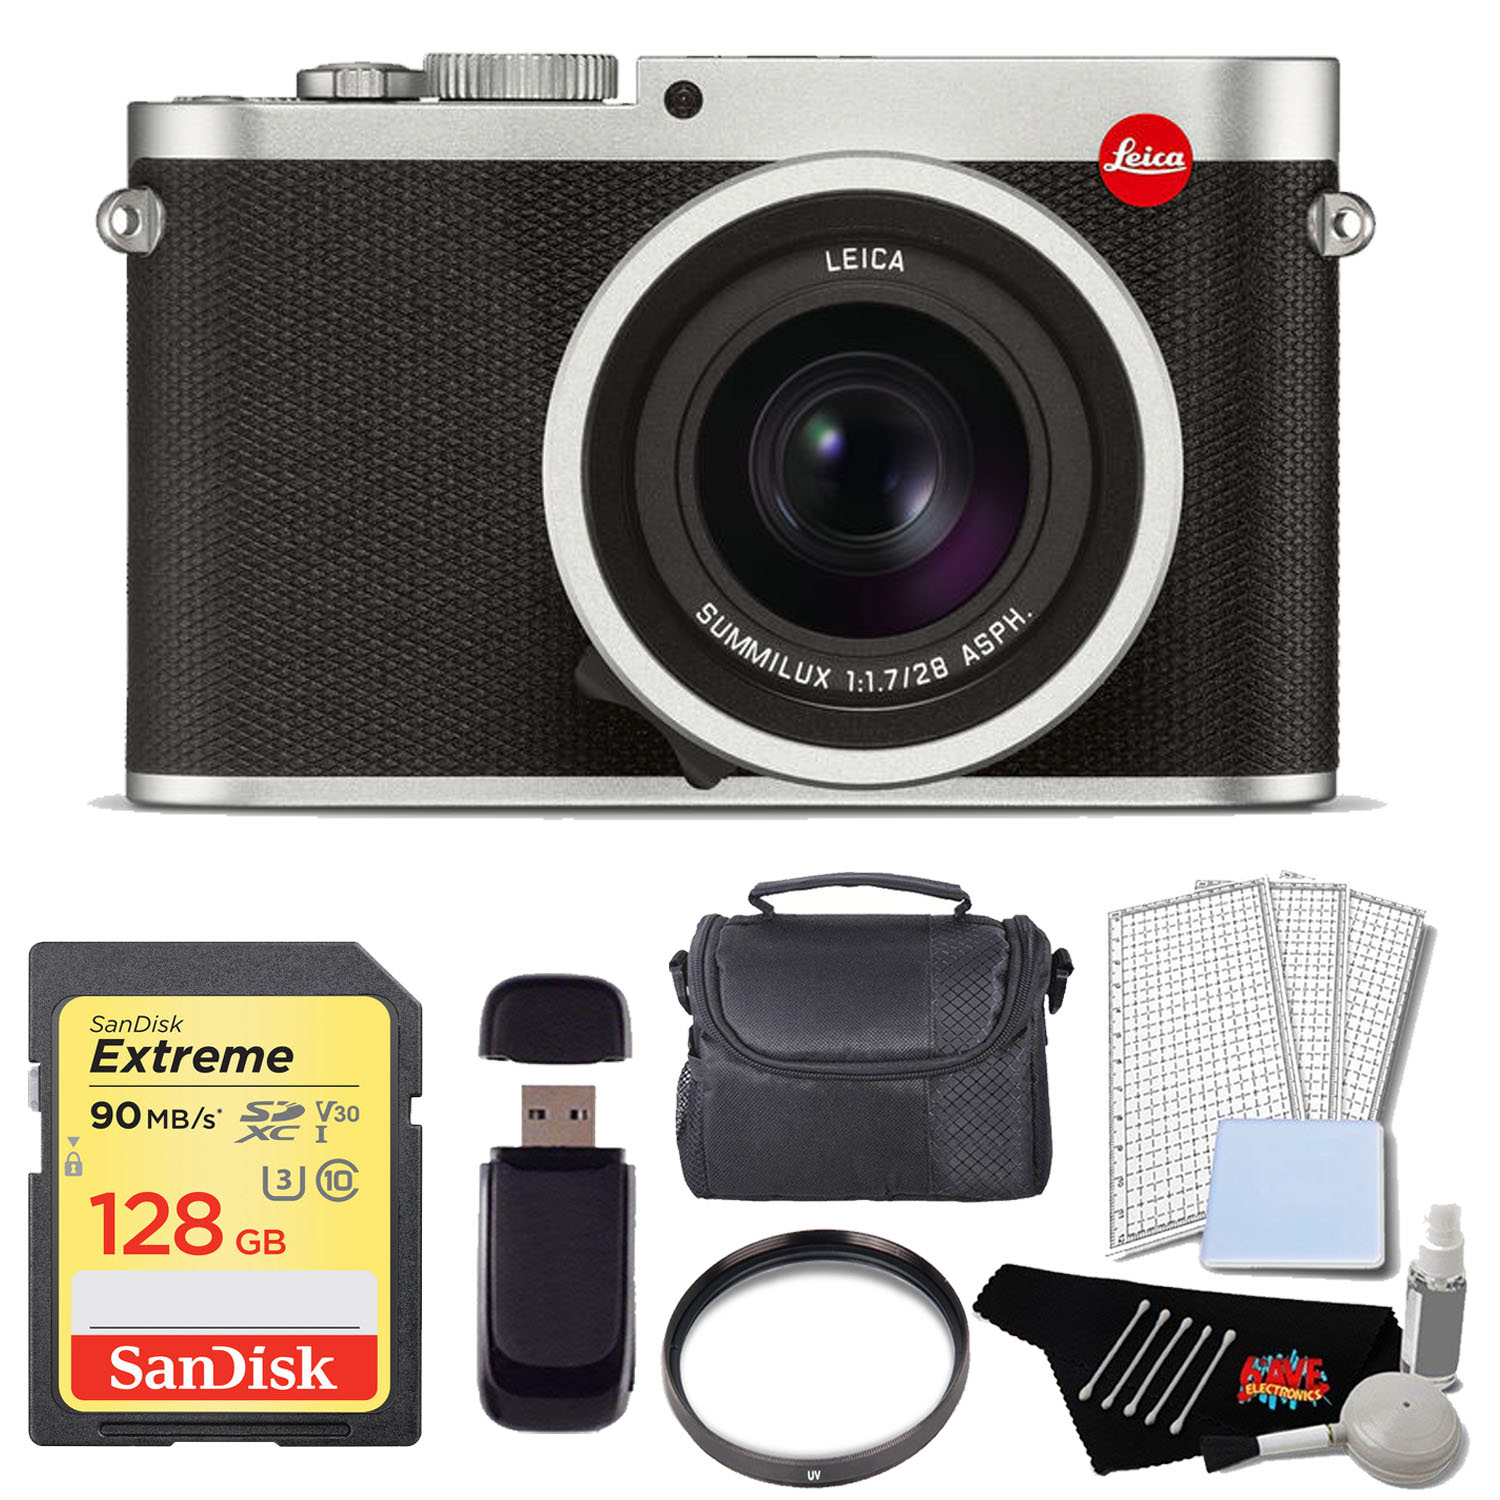 Leica Q (Typ 116) Digital Camera Pro Kit (Silver Anodized) by Leica